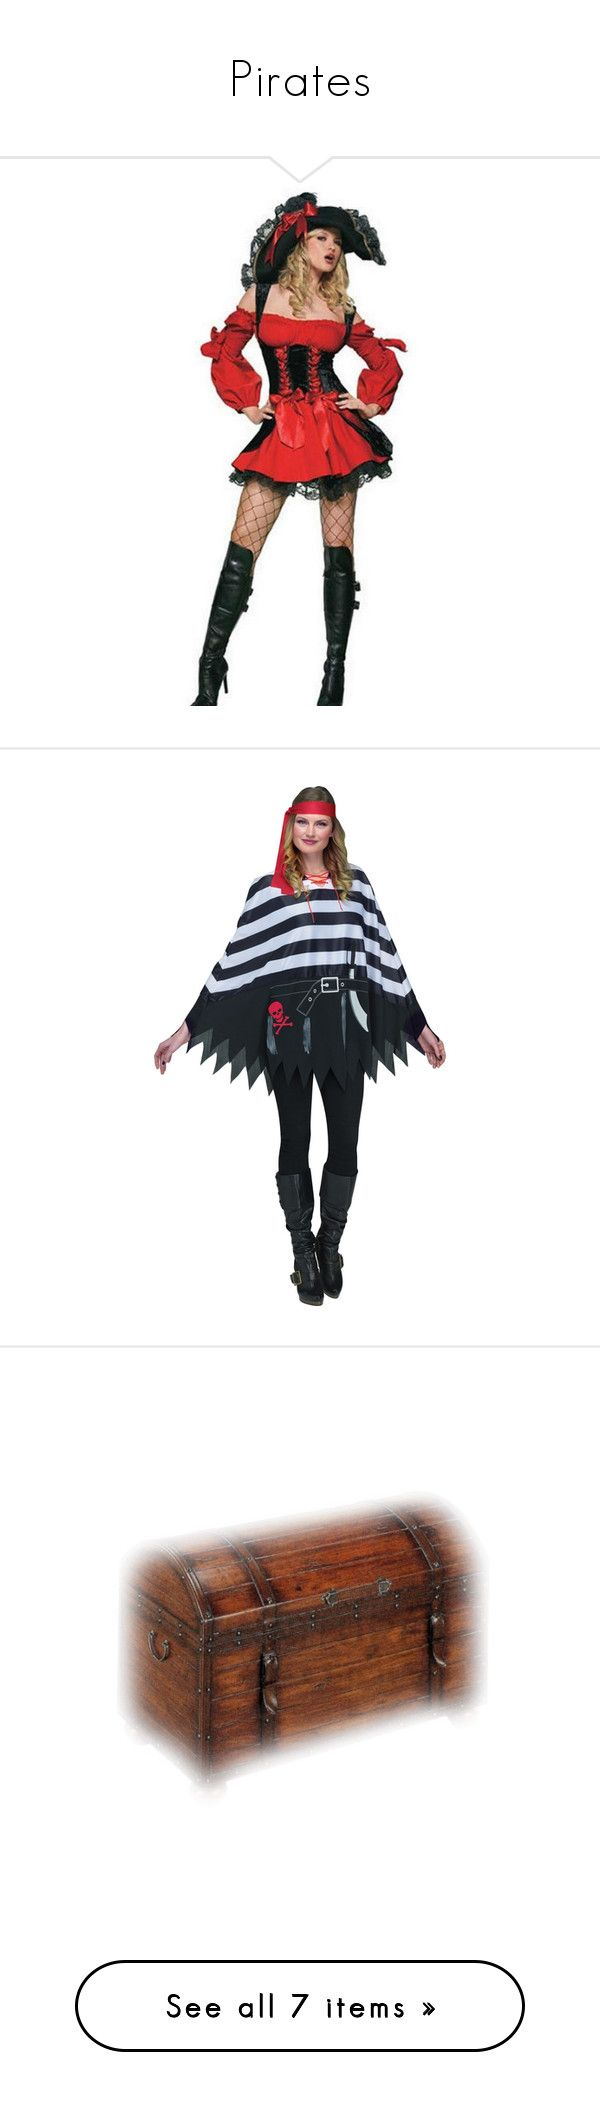 """""""Pirates"""" by mysfytdesigns ❤ liked on Polyvore featuring costumes, red halloween costumes, pirate costume, red costumes, cosplay halloween costumes, red pirate costume, halloween costumes, style poncho, pirate halloween costumes and poncho costume"""